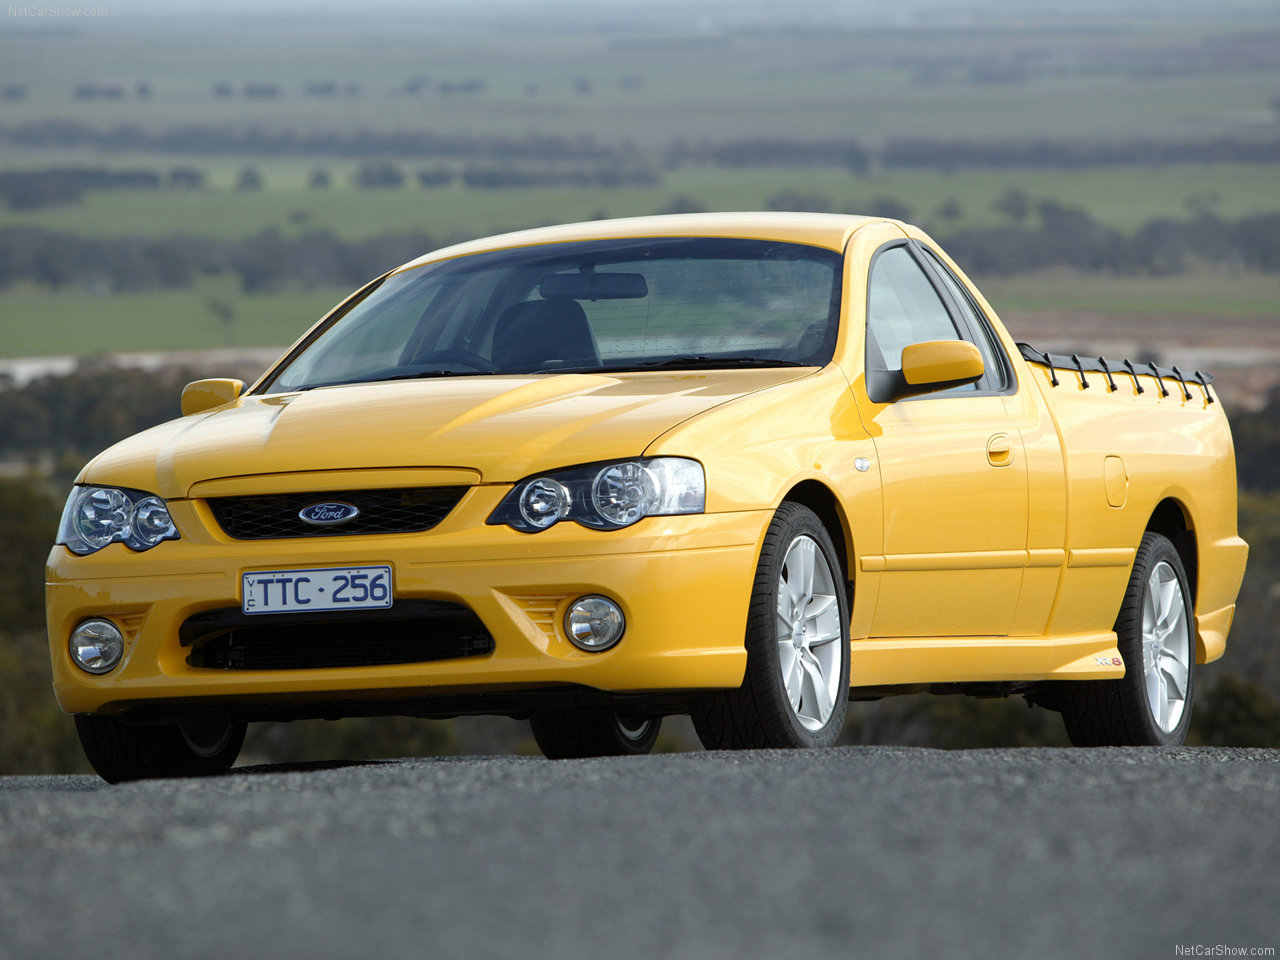 Ford - Populaire français d'automobiles: 2005 Ford BF Falcon XR8 Ute